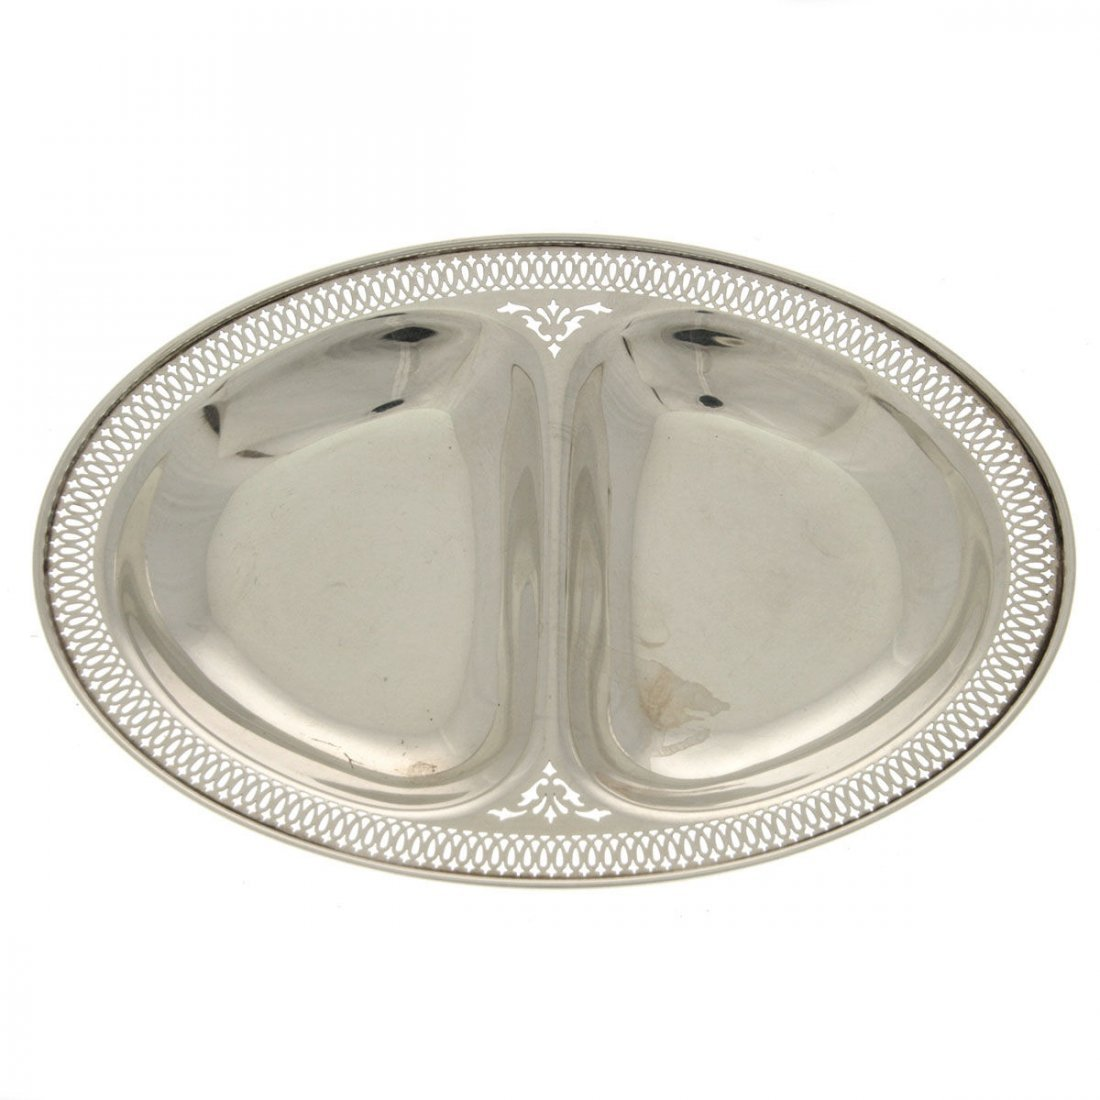 Whiting Sterling Silver Oval Double Dish, NY, 1915.